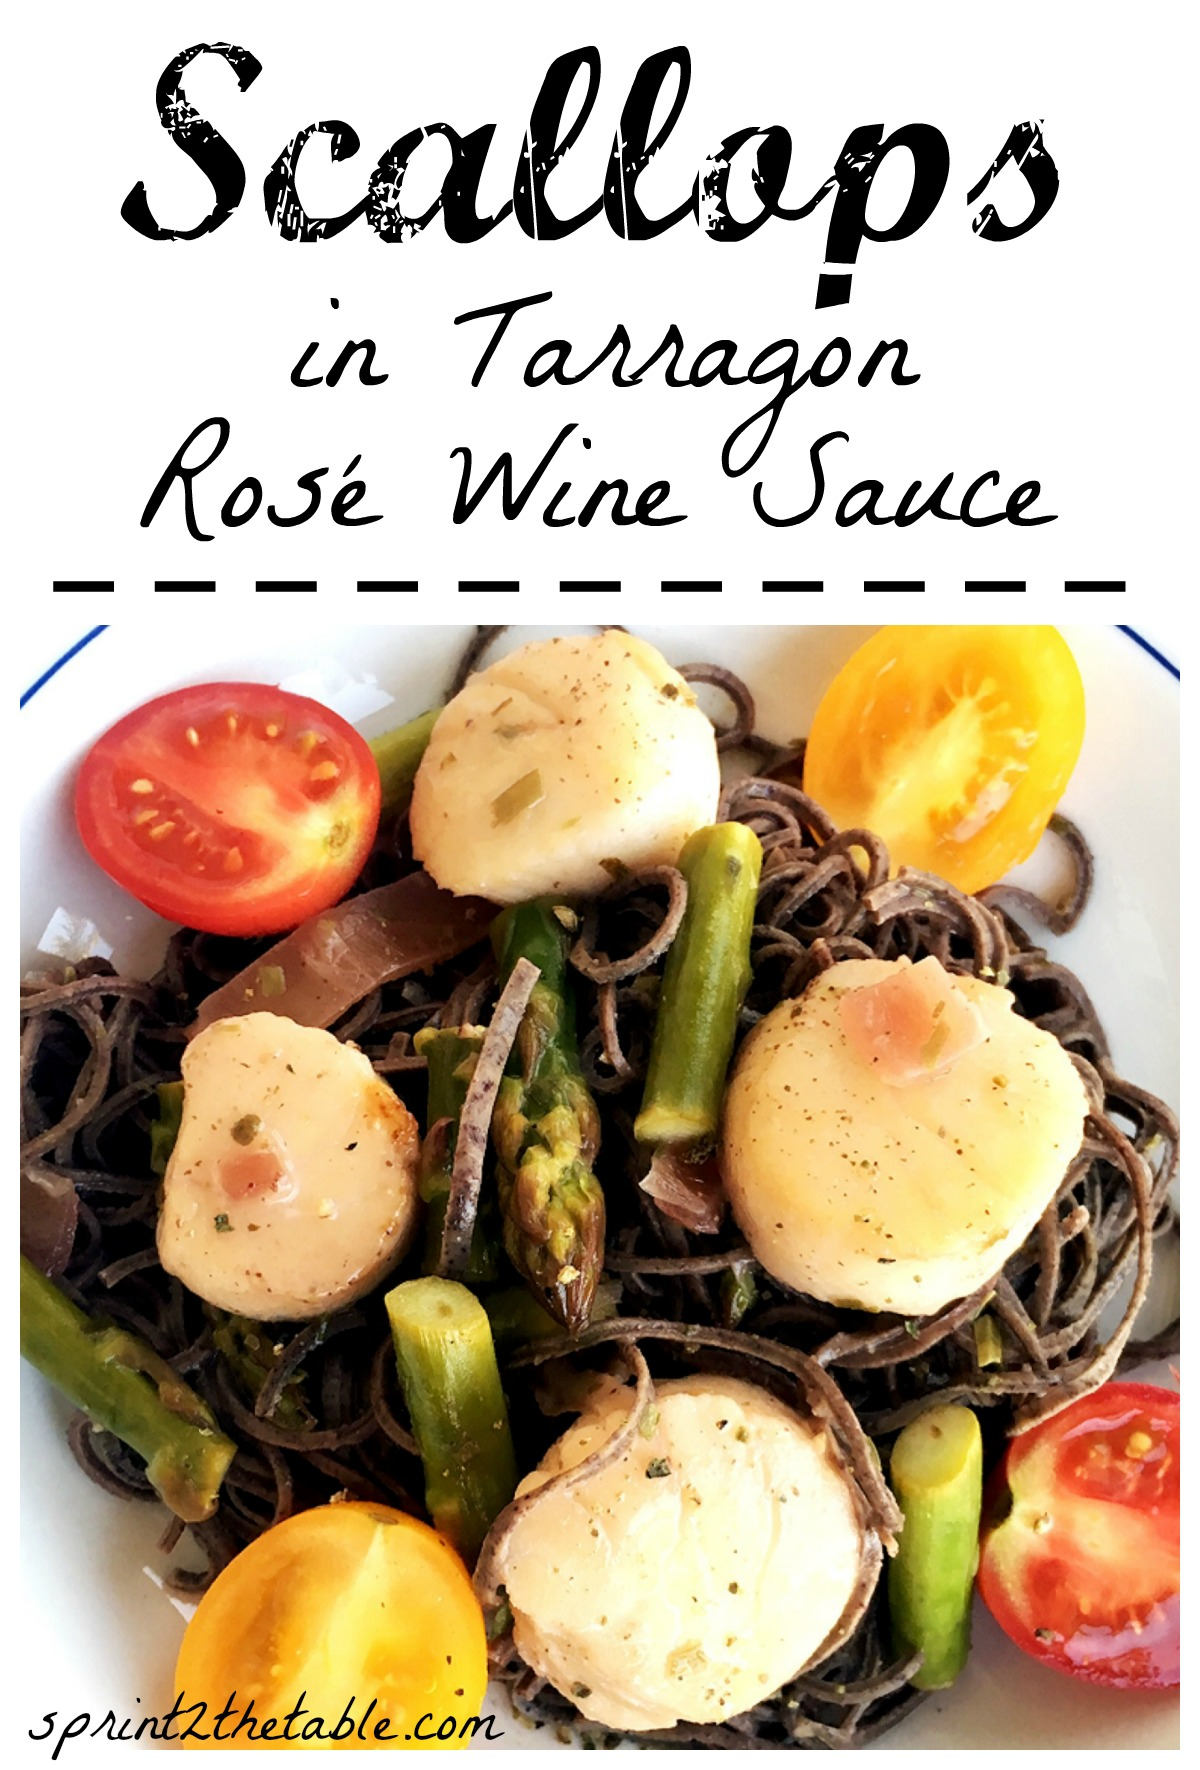 Leftover wine? This easy Sea Scallop in Tarragon Rosé Wine Sauce recipe!